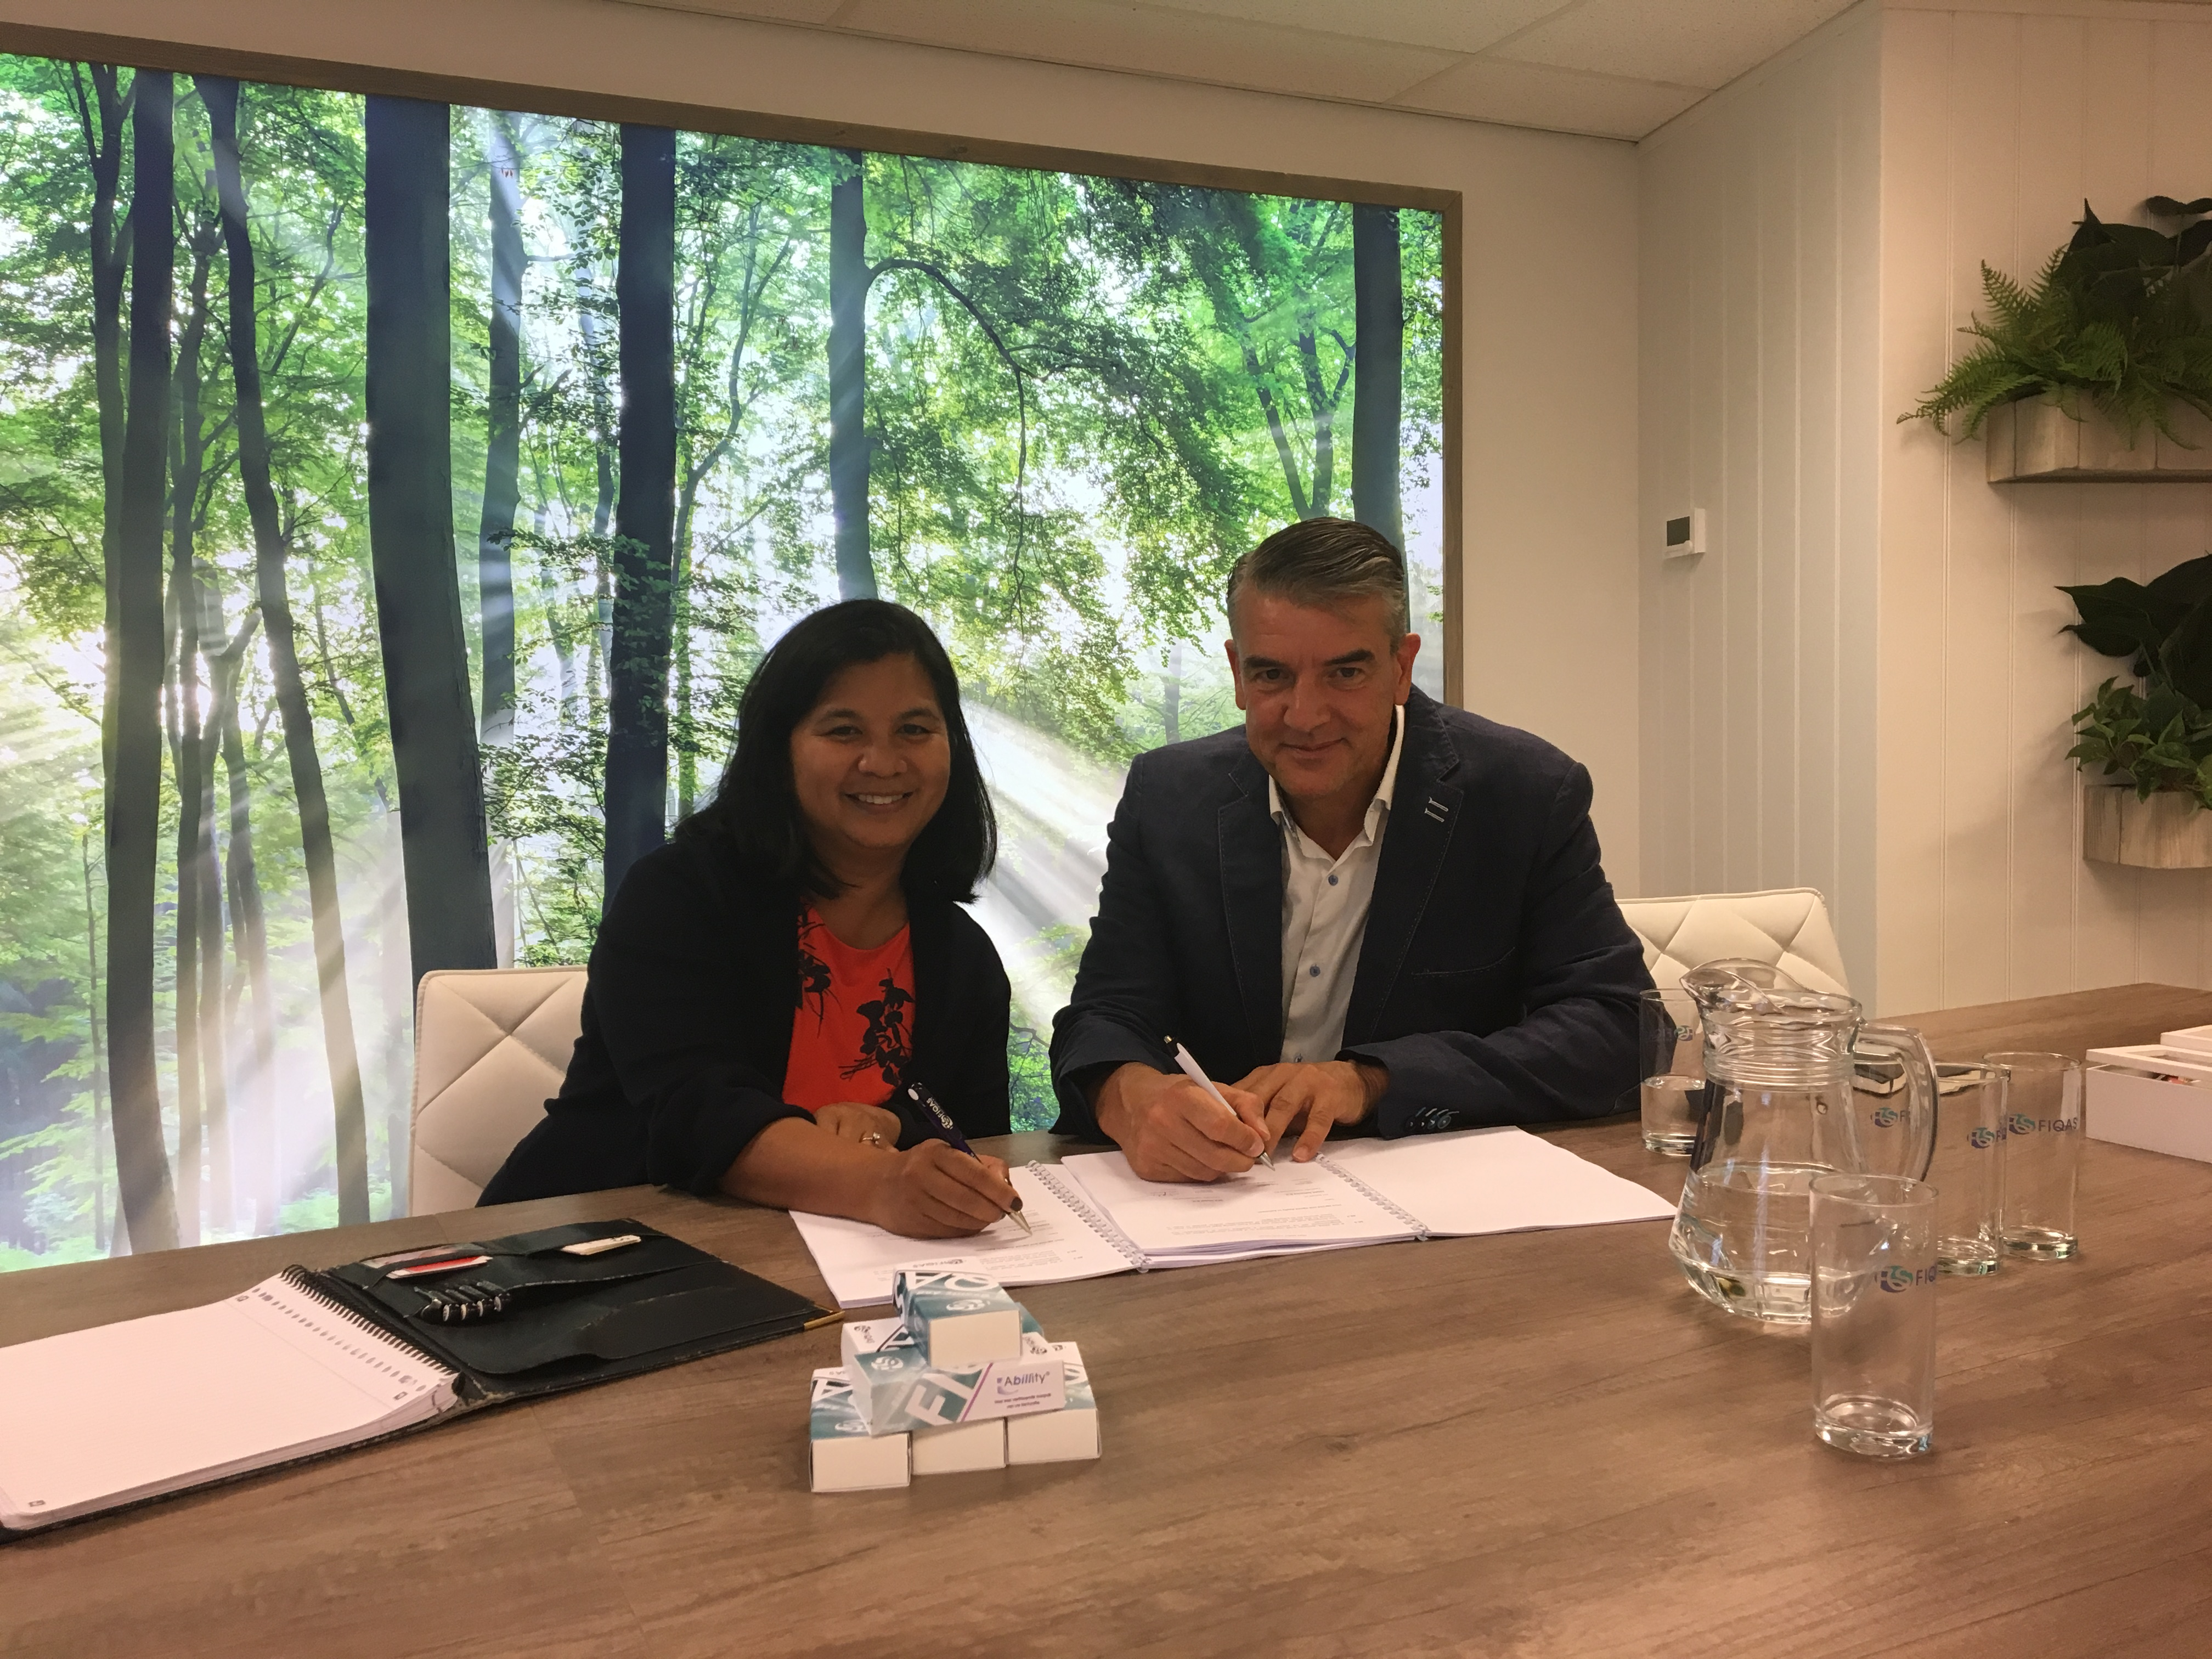 Lydia Ventura (CFO OLX) and Rob Geleijn (CEO FIQAS) undersign the agreement at FIQAS HQ